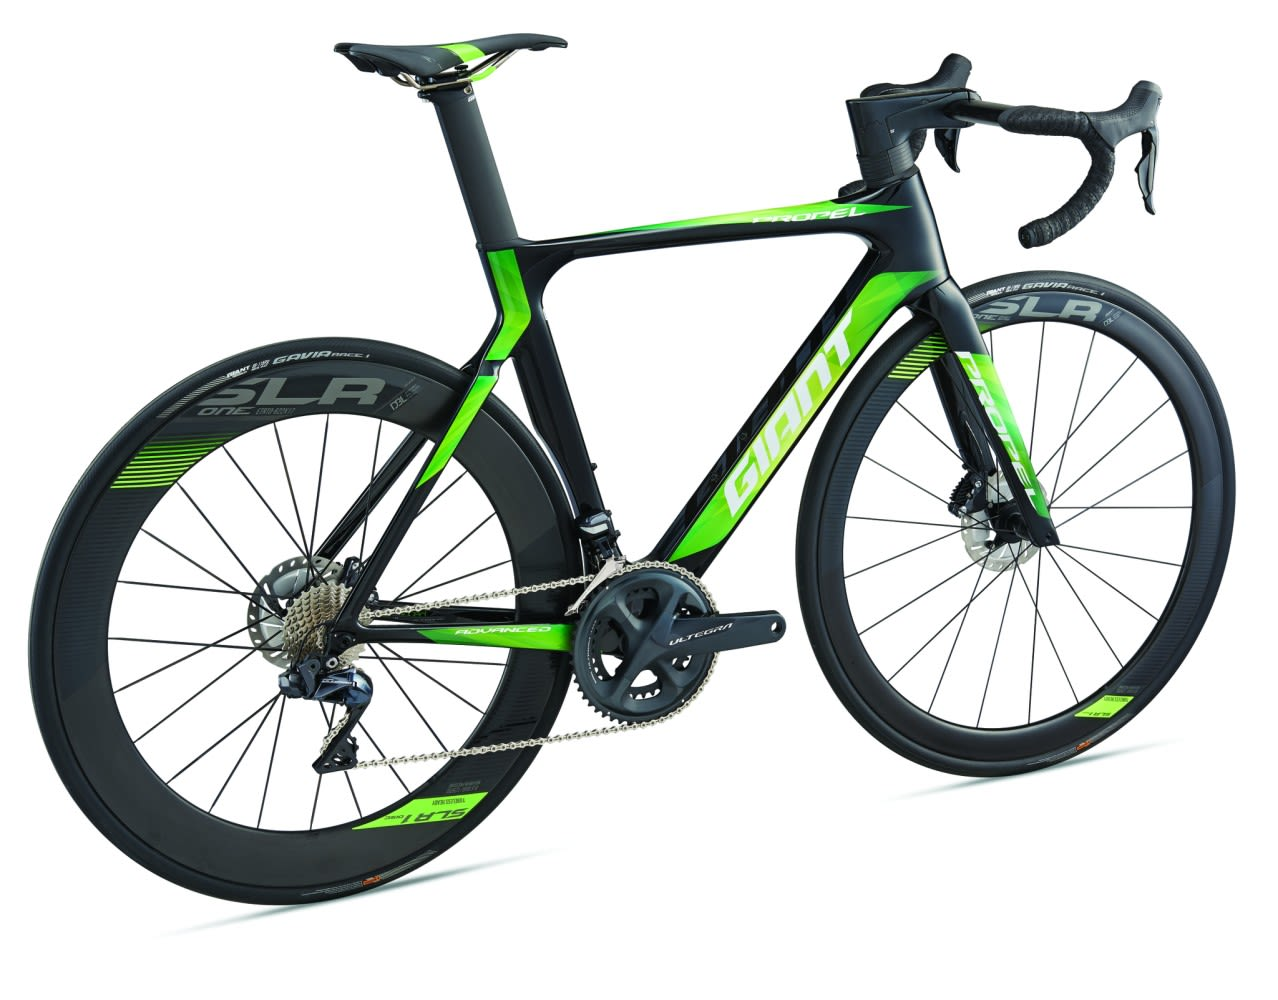 664cb4712fc The 2018 Propel Advanced Pro Disc series frameset is handcrafted with  Advanced-grade composite, including a full-composite asymmetric fork,  developed with ...